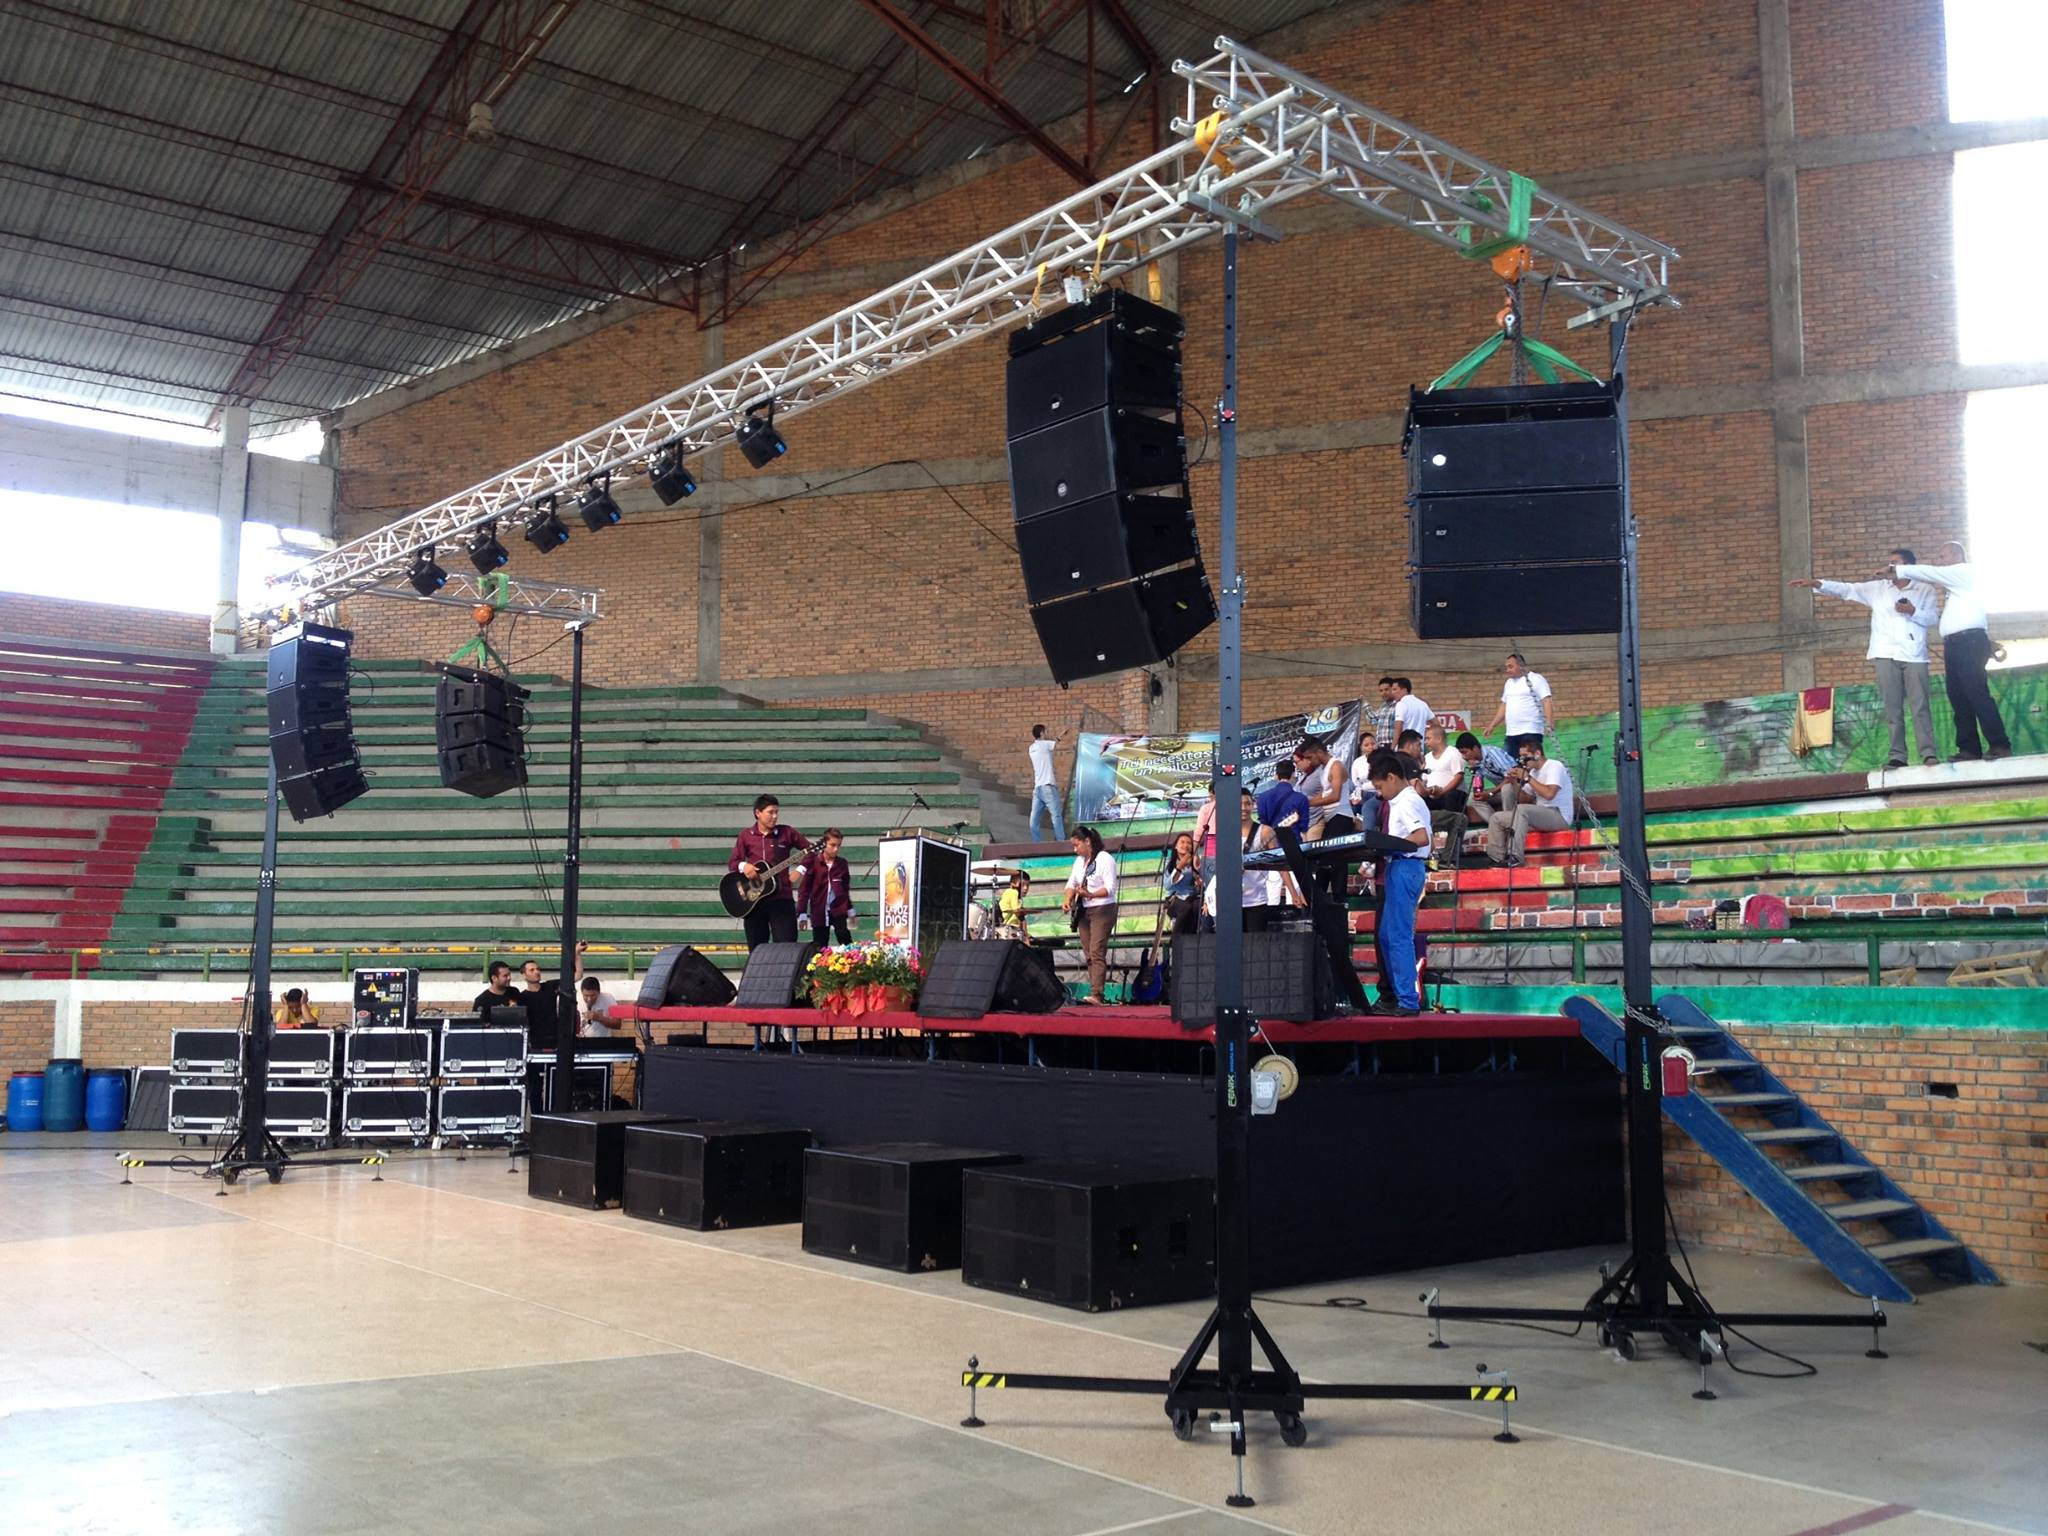 Stage with lifting towers @ Coliseo Cubierto Pitalito, Huila (Colombia)